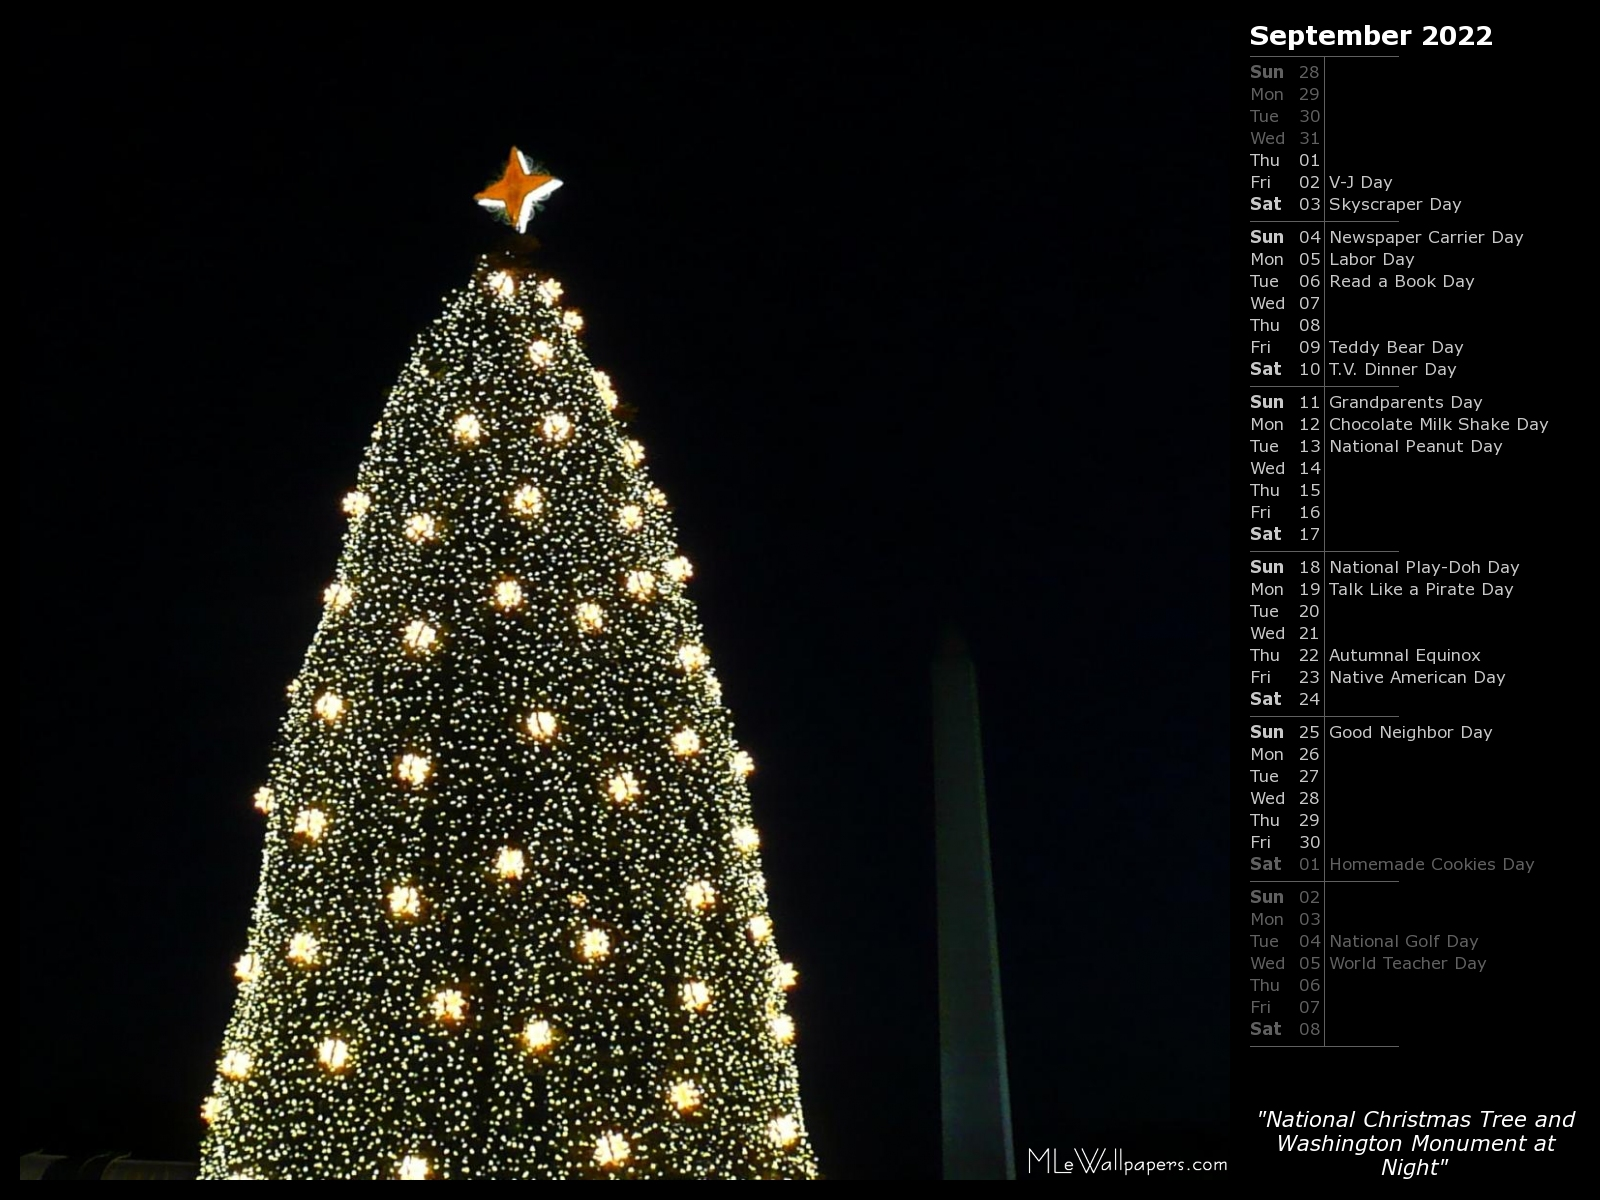 National Christmas Tree 2019.Mlewallpapers Com National Christmas Tree And Washington